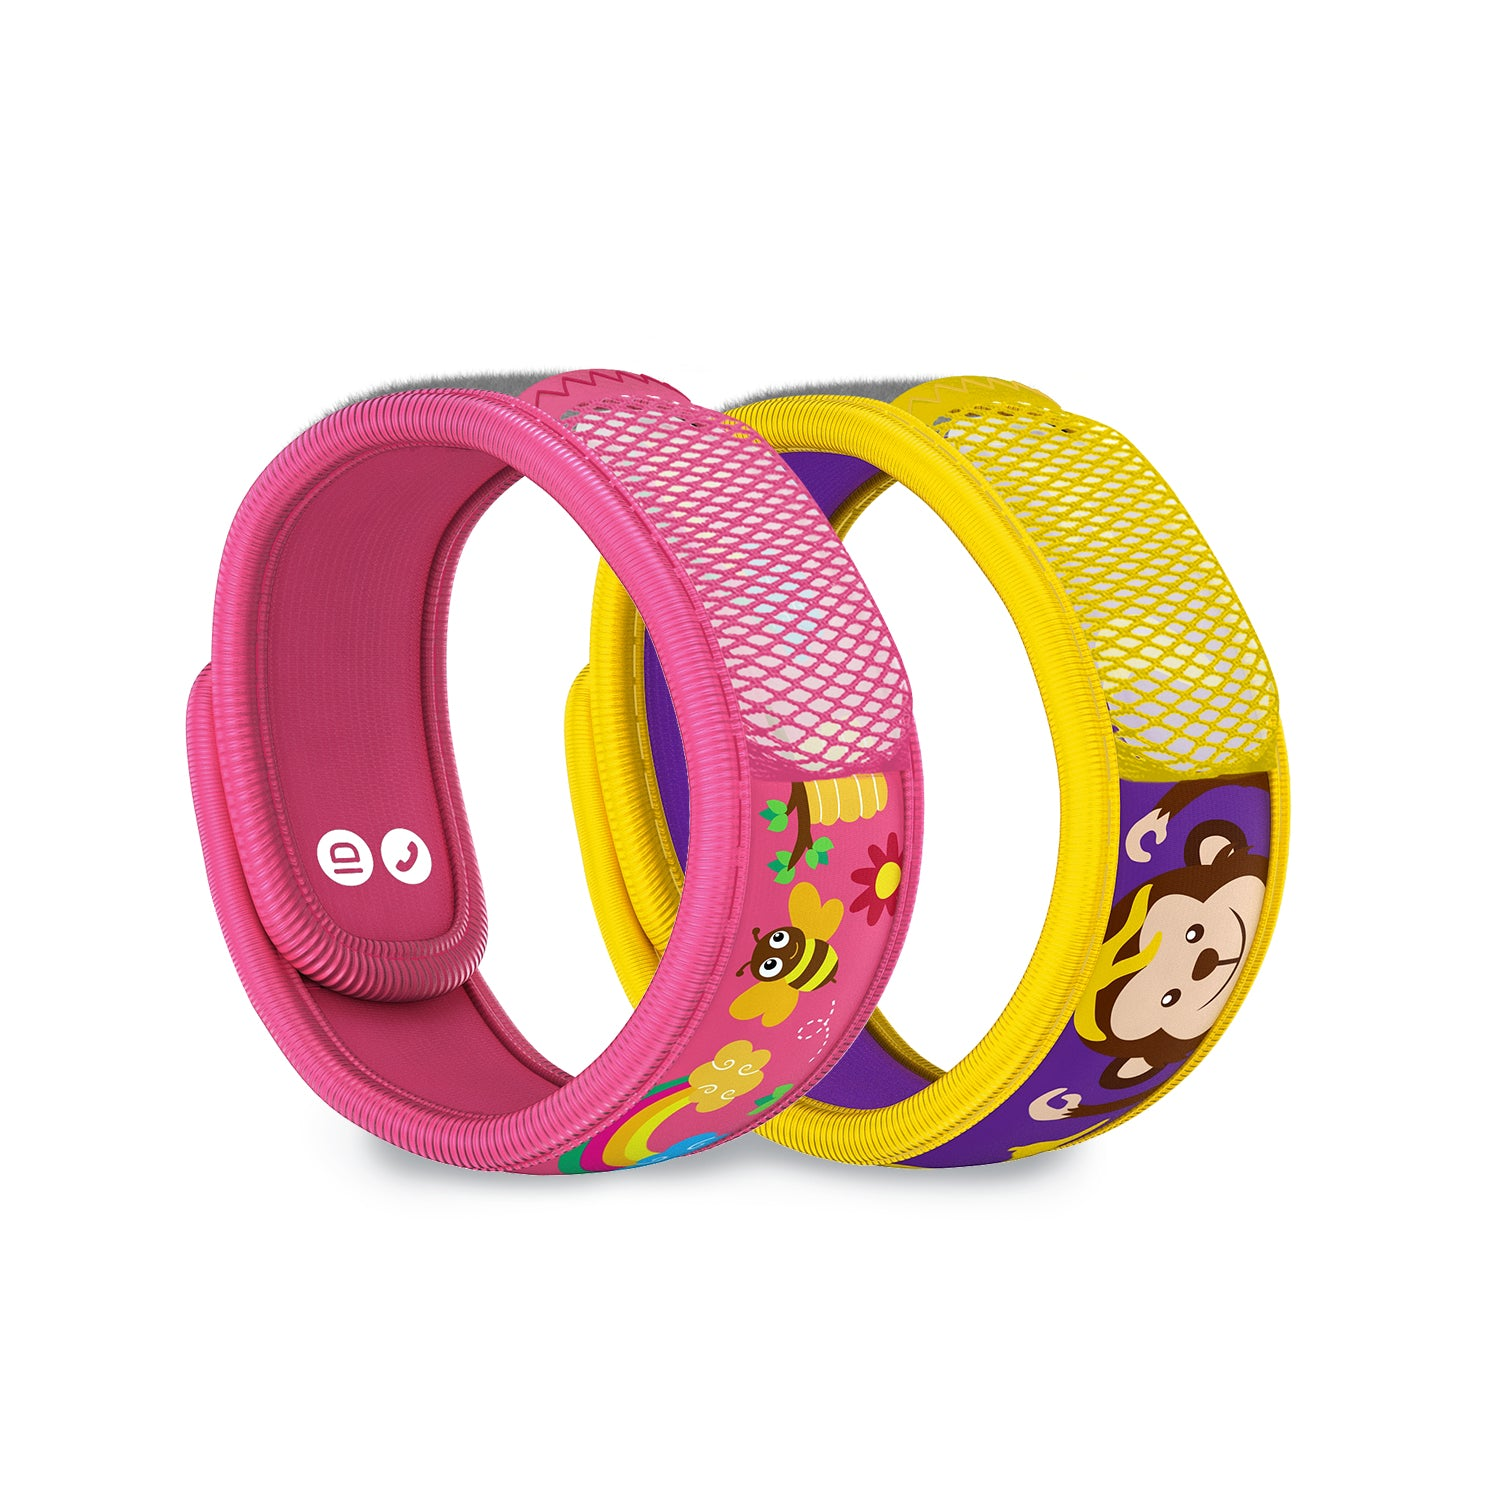 Mosquito Repellent Bonus Pack - 2 Kids Wristbands